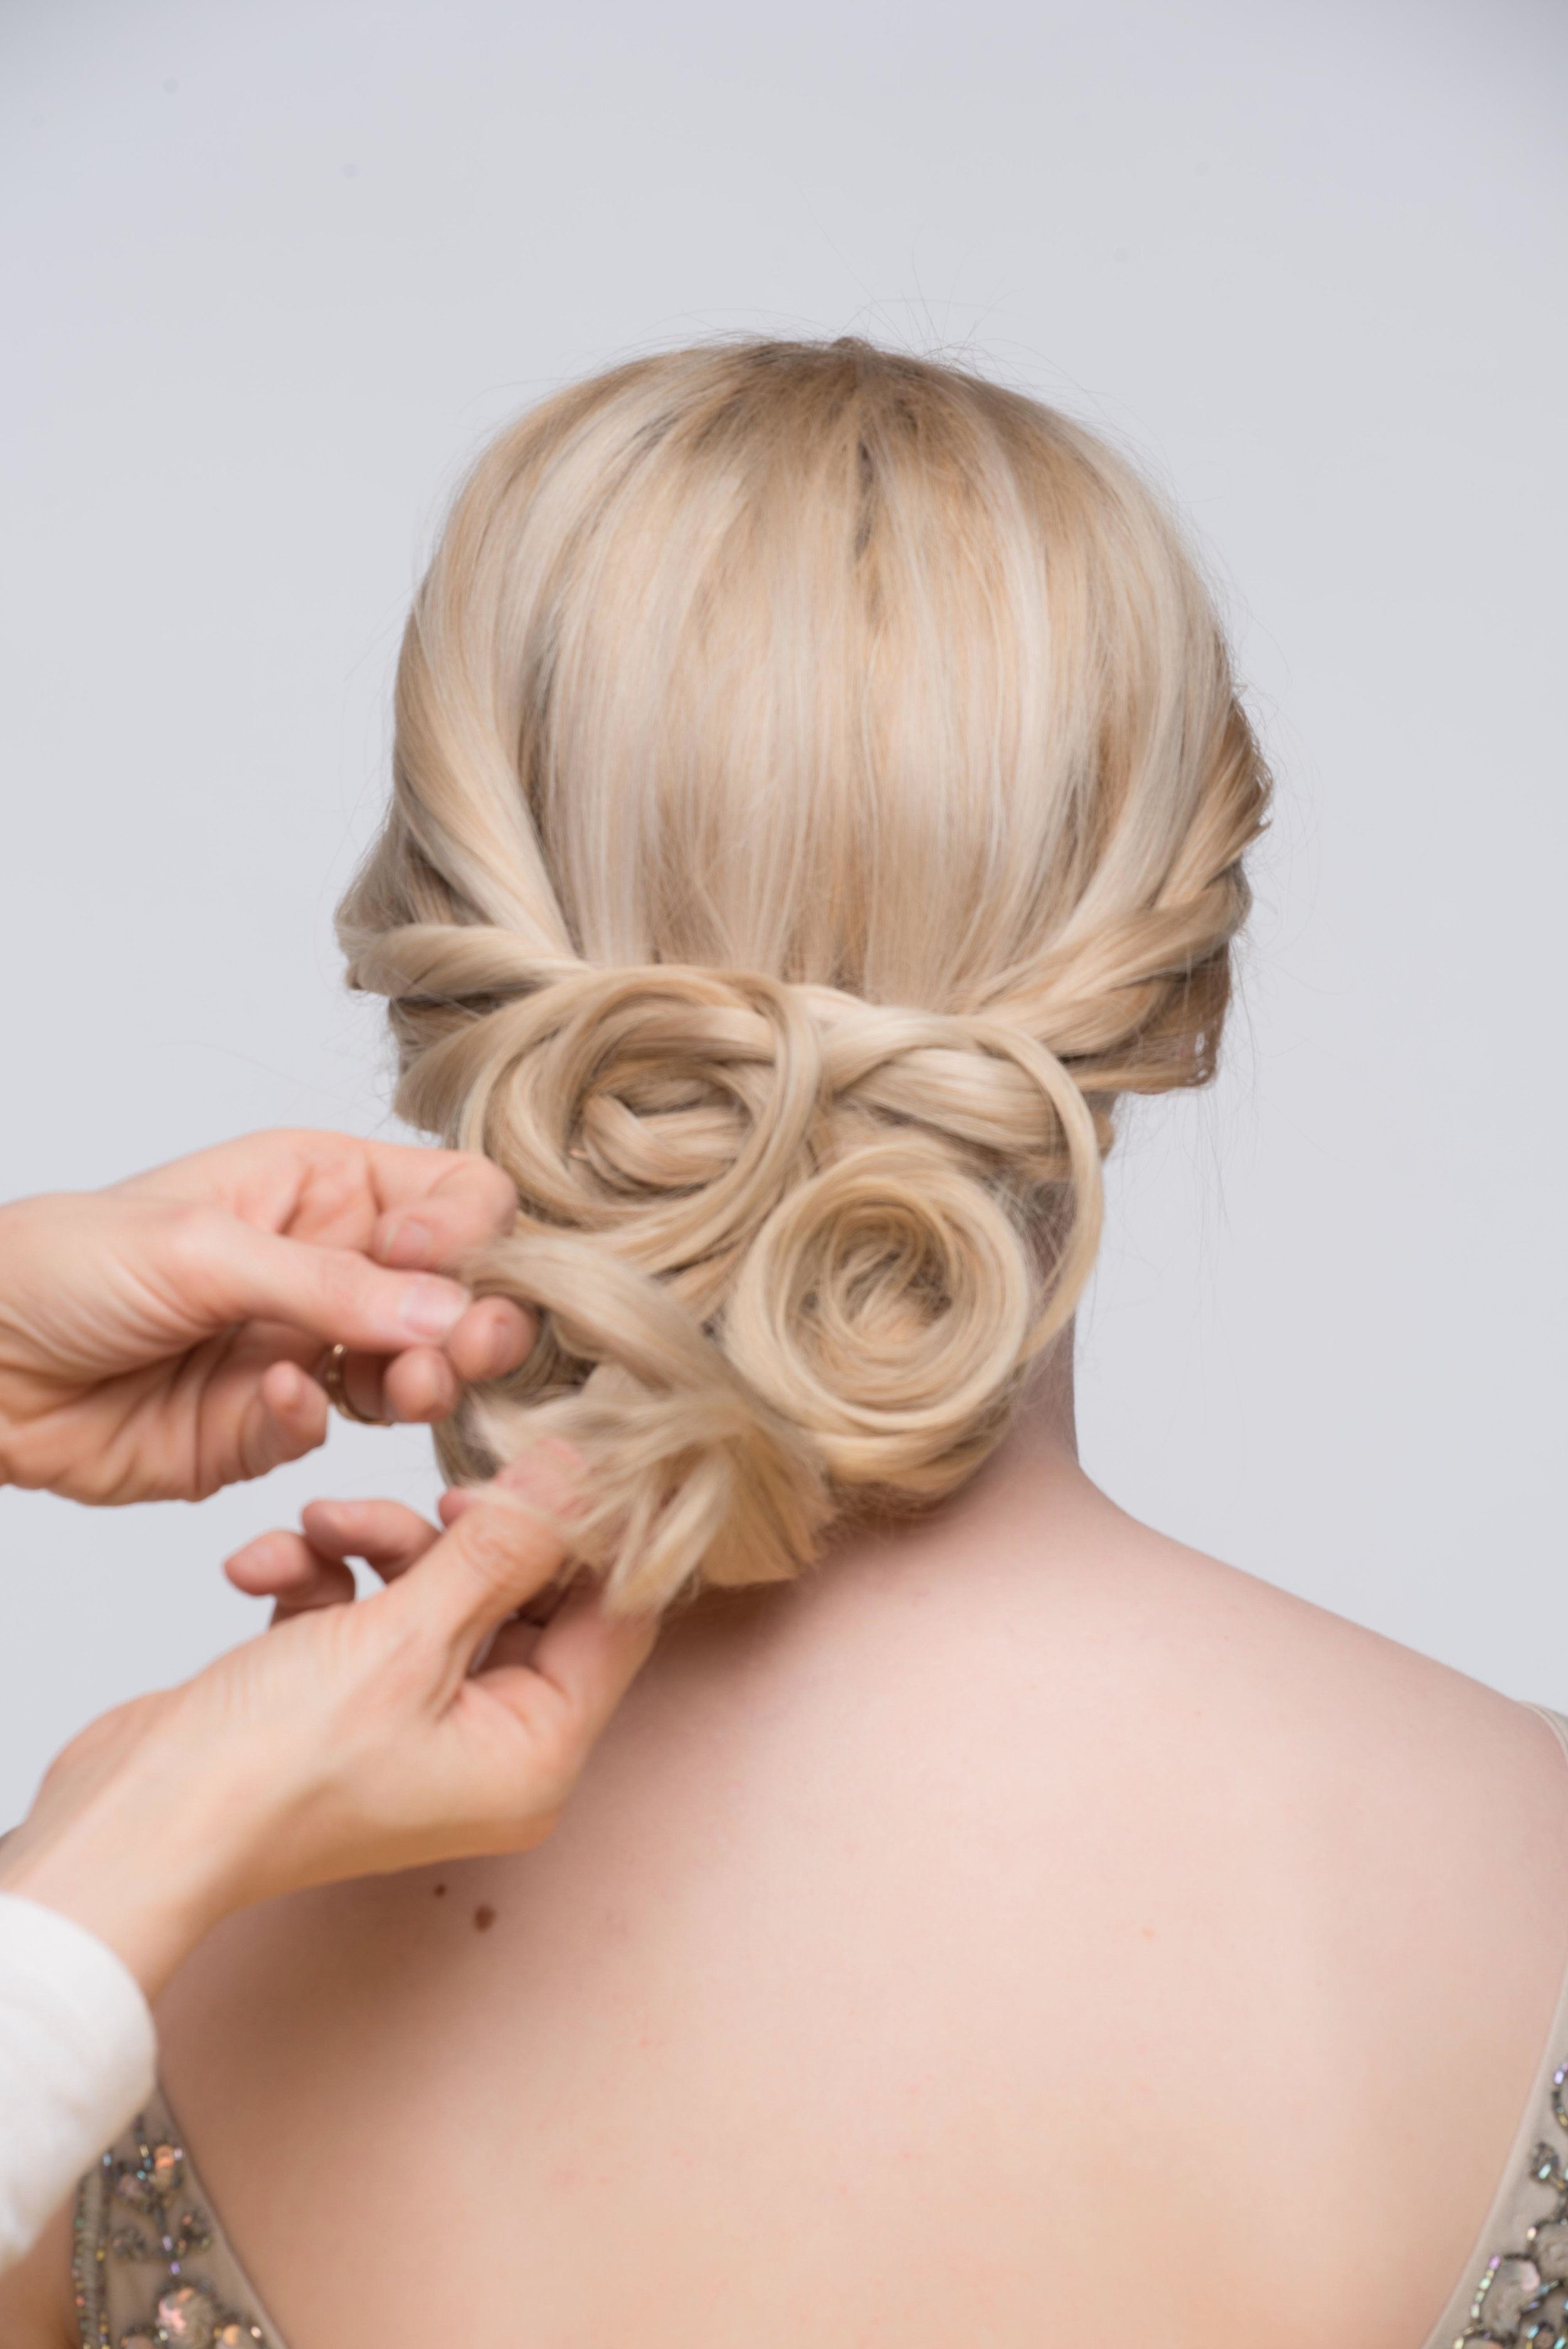 Continue to pin the bottom pieces into the style. Directing the hair to the middle of the head and changing up the pattern to get a unique glam look. Spray any loose hairs into place with a finishing spray.